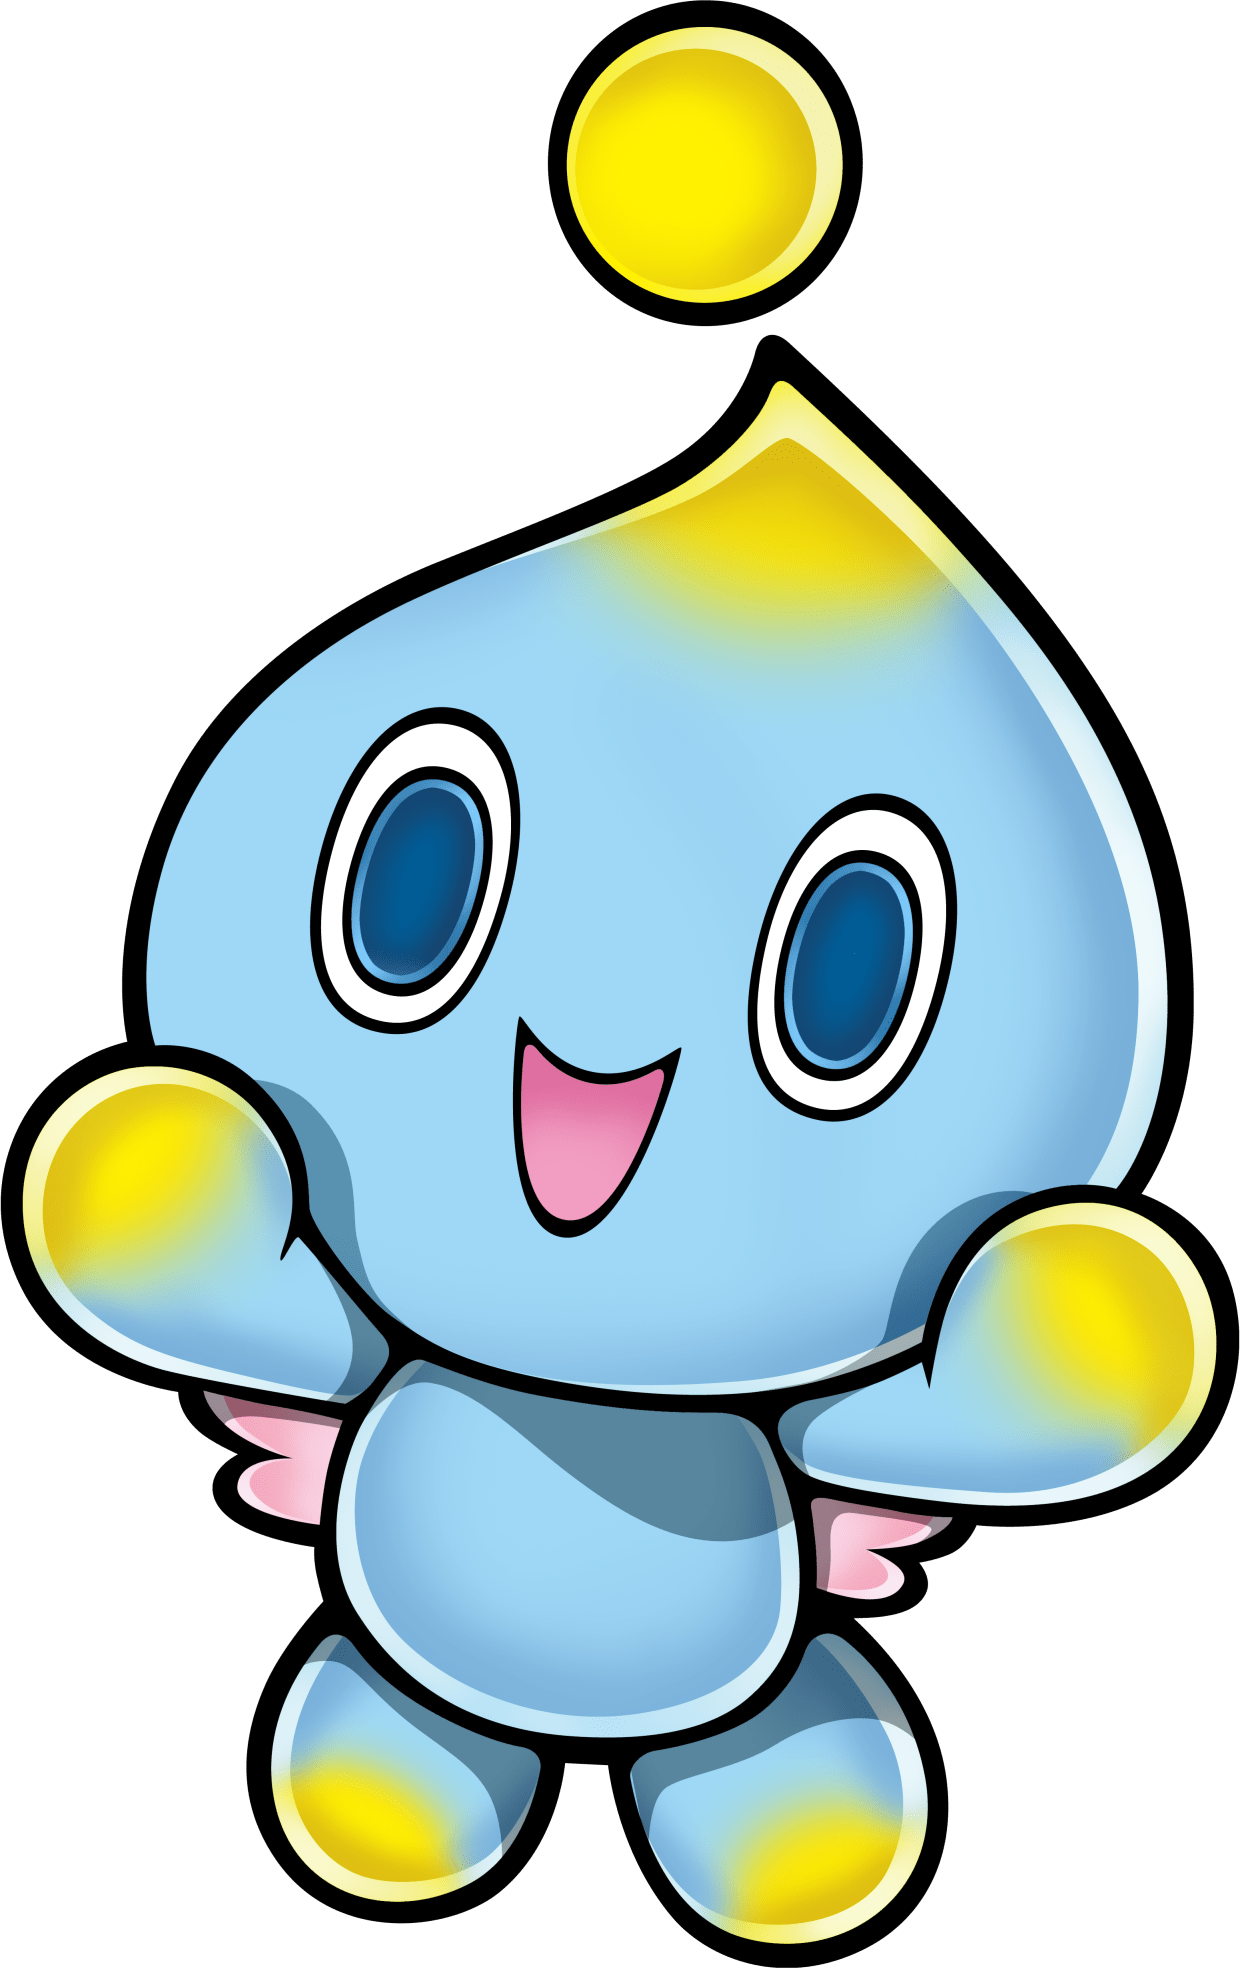 hight resolution of image png sonic news transparent chao translucent picture stock